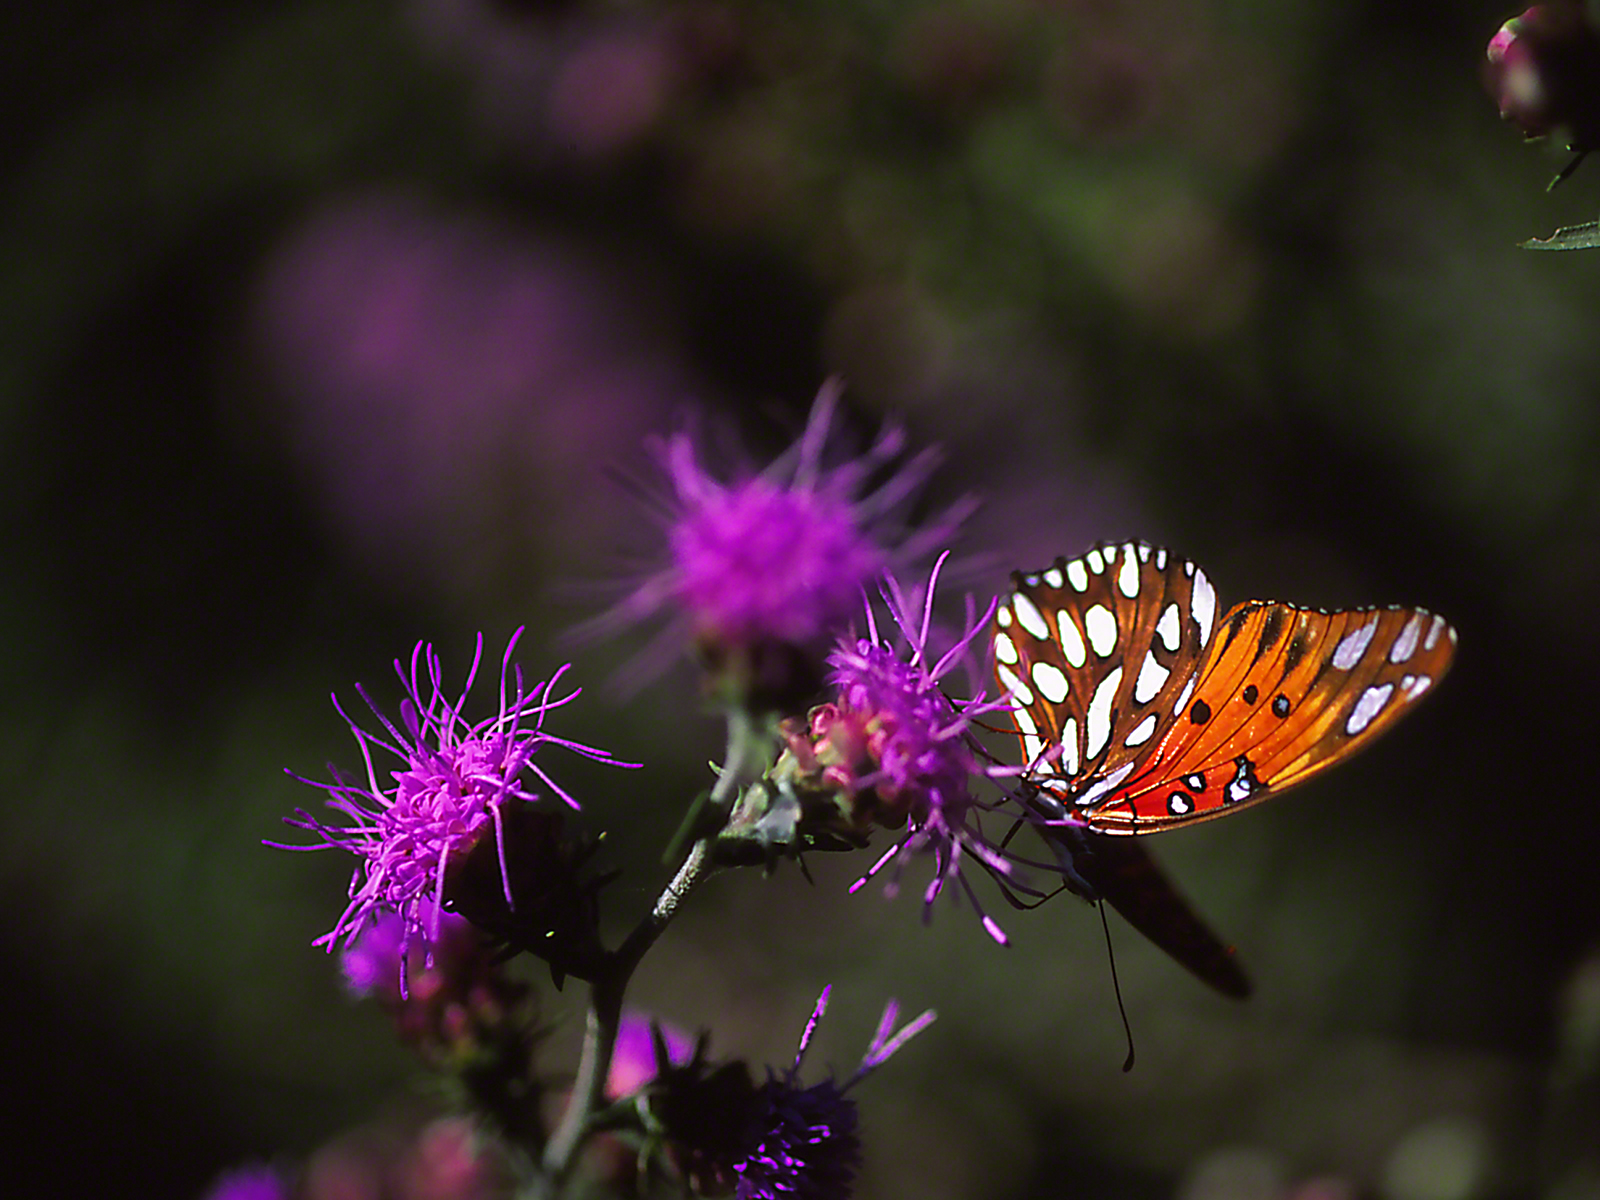 Gulf fritillary butterfly sipping nectar on thistle, photographed by Jeff Zablow at Wildlife Management Area, Kathleen, GA